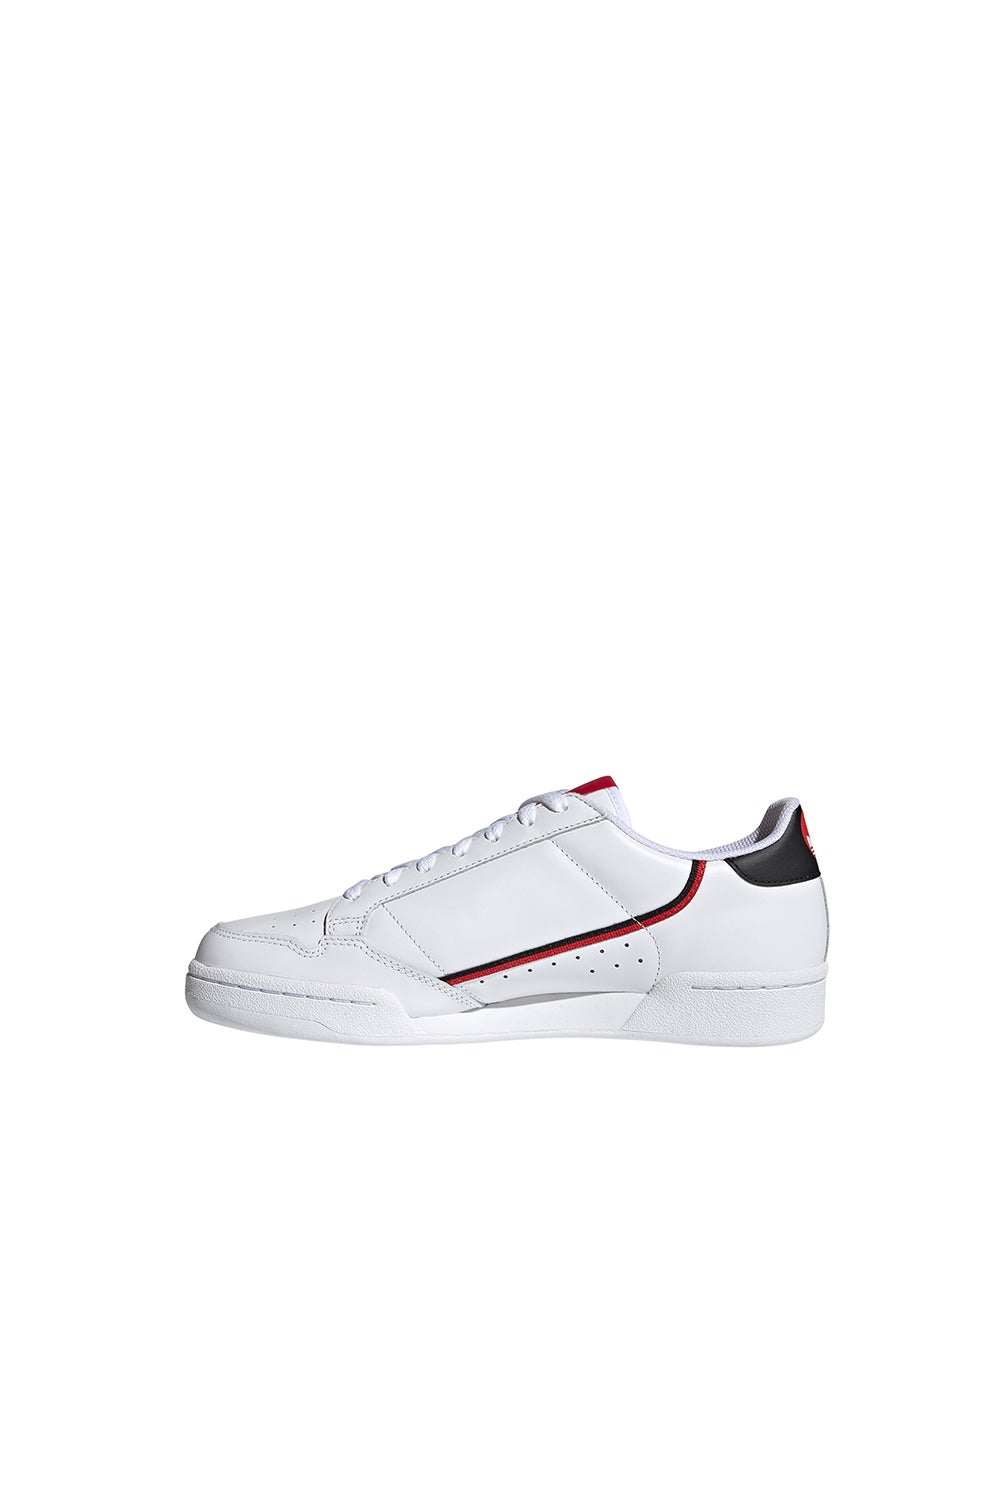 adidas Continental 80 FTWR White/Core Black/Scarlet